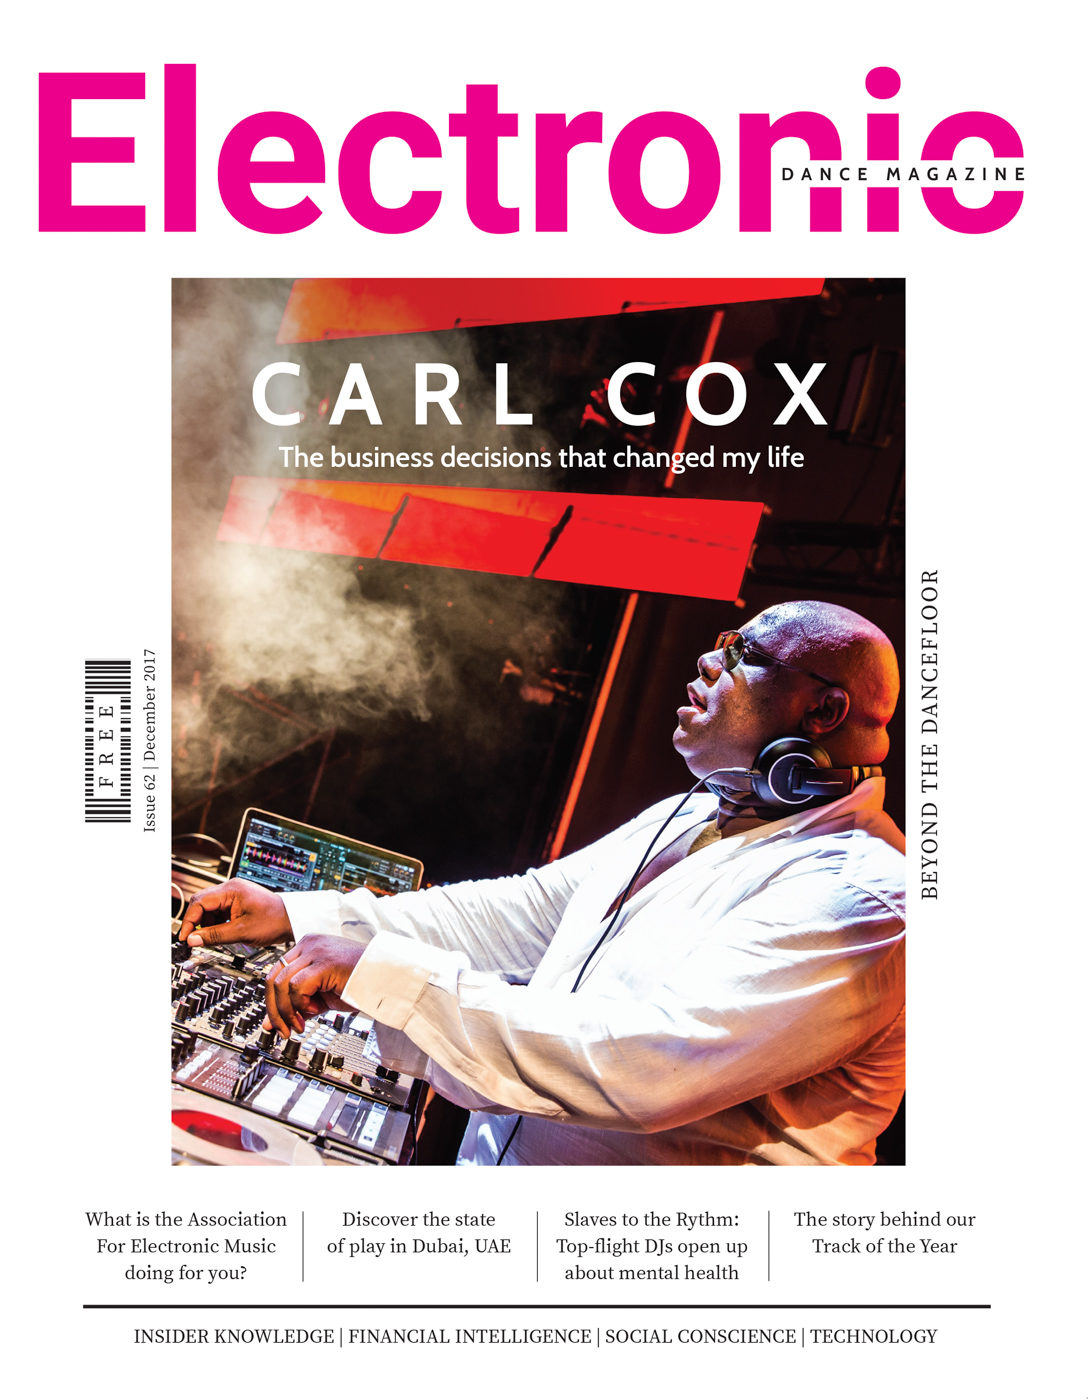 Electronic Music Magazine Cover - Carl Cox